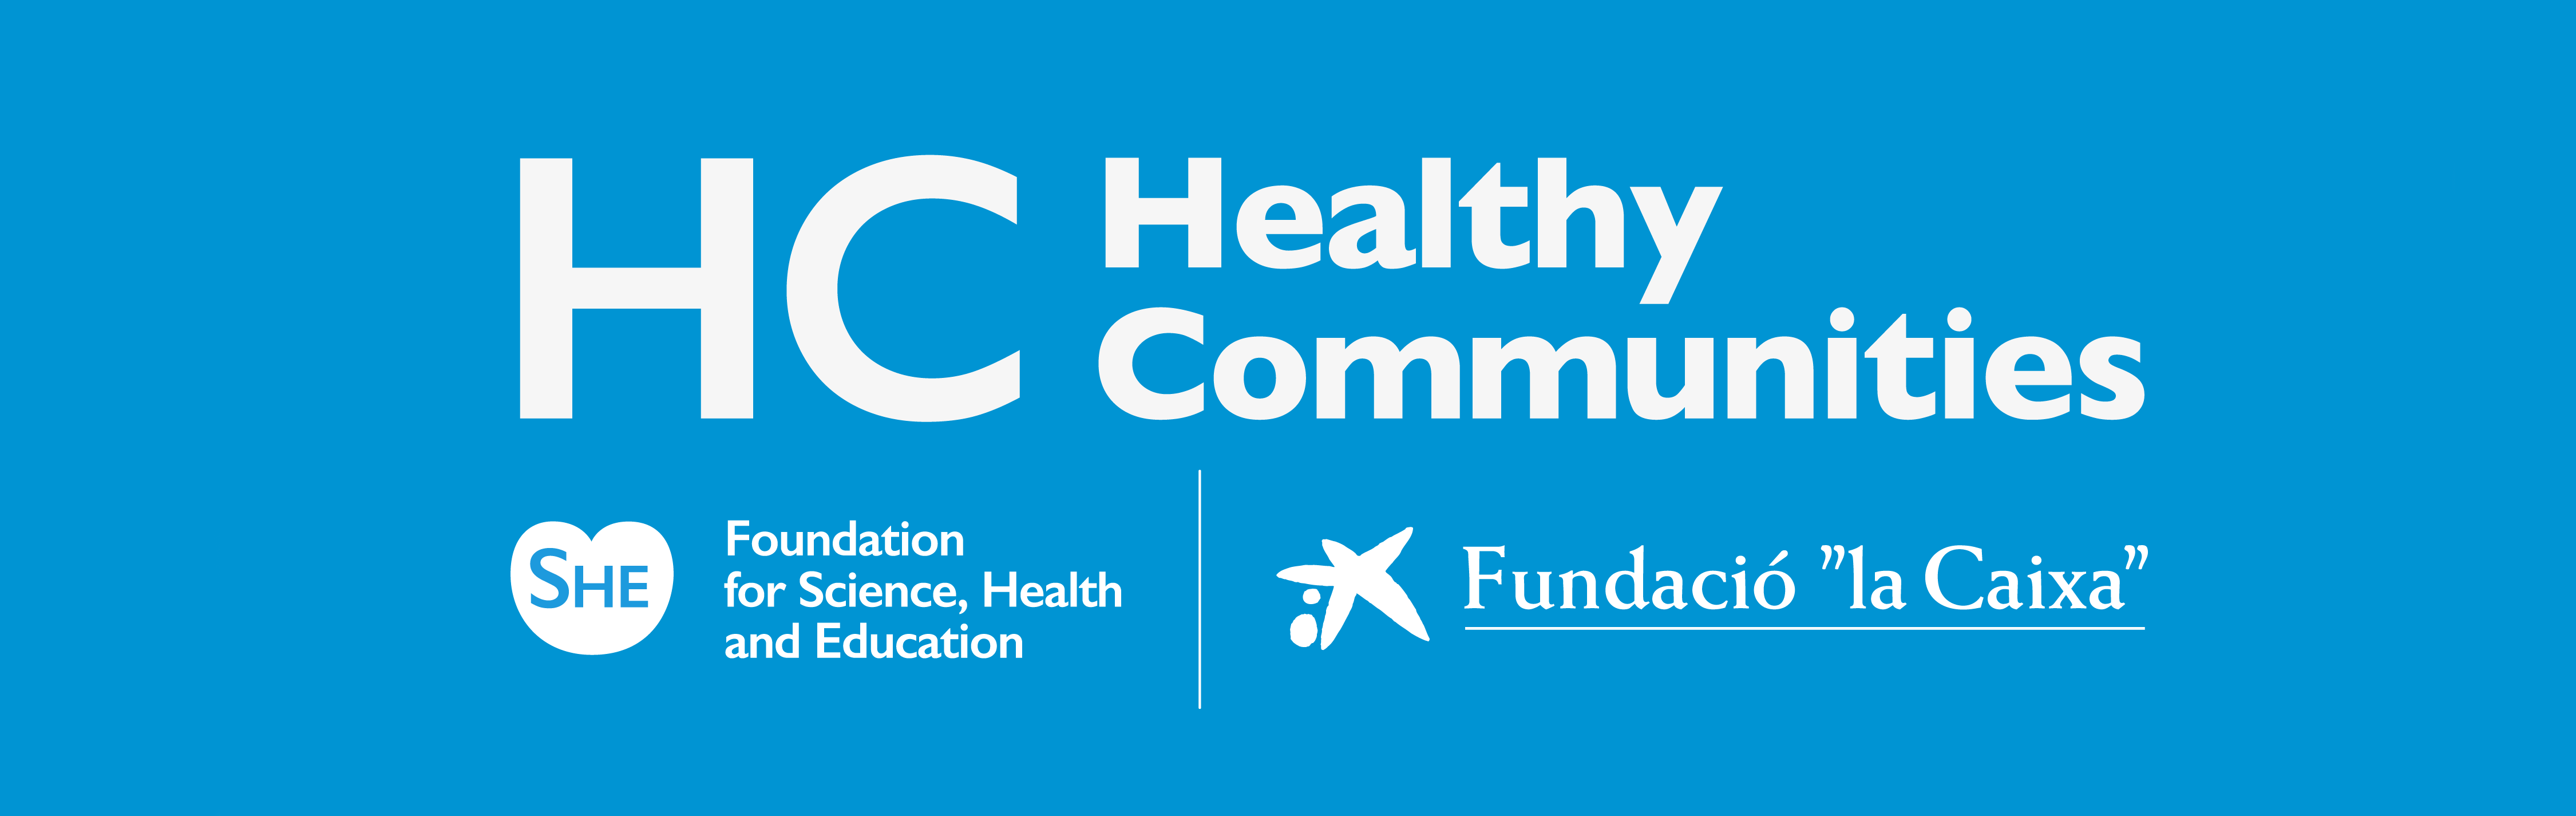 Healthy Communities 2030